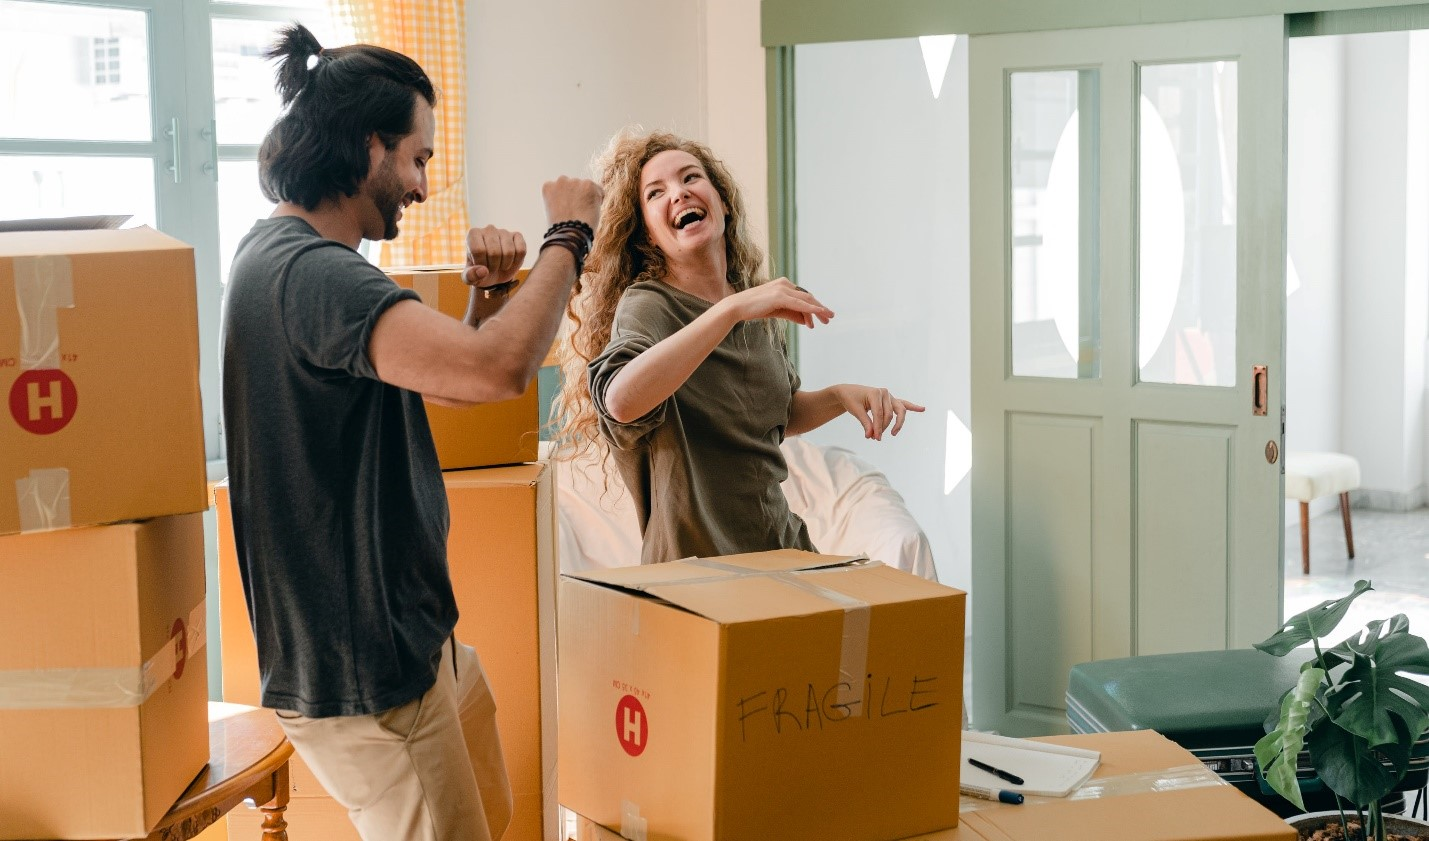 A couple laughs and dances as they unpack boxes.